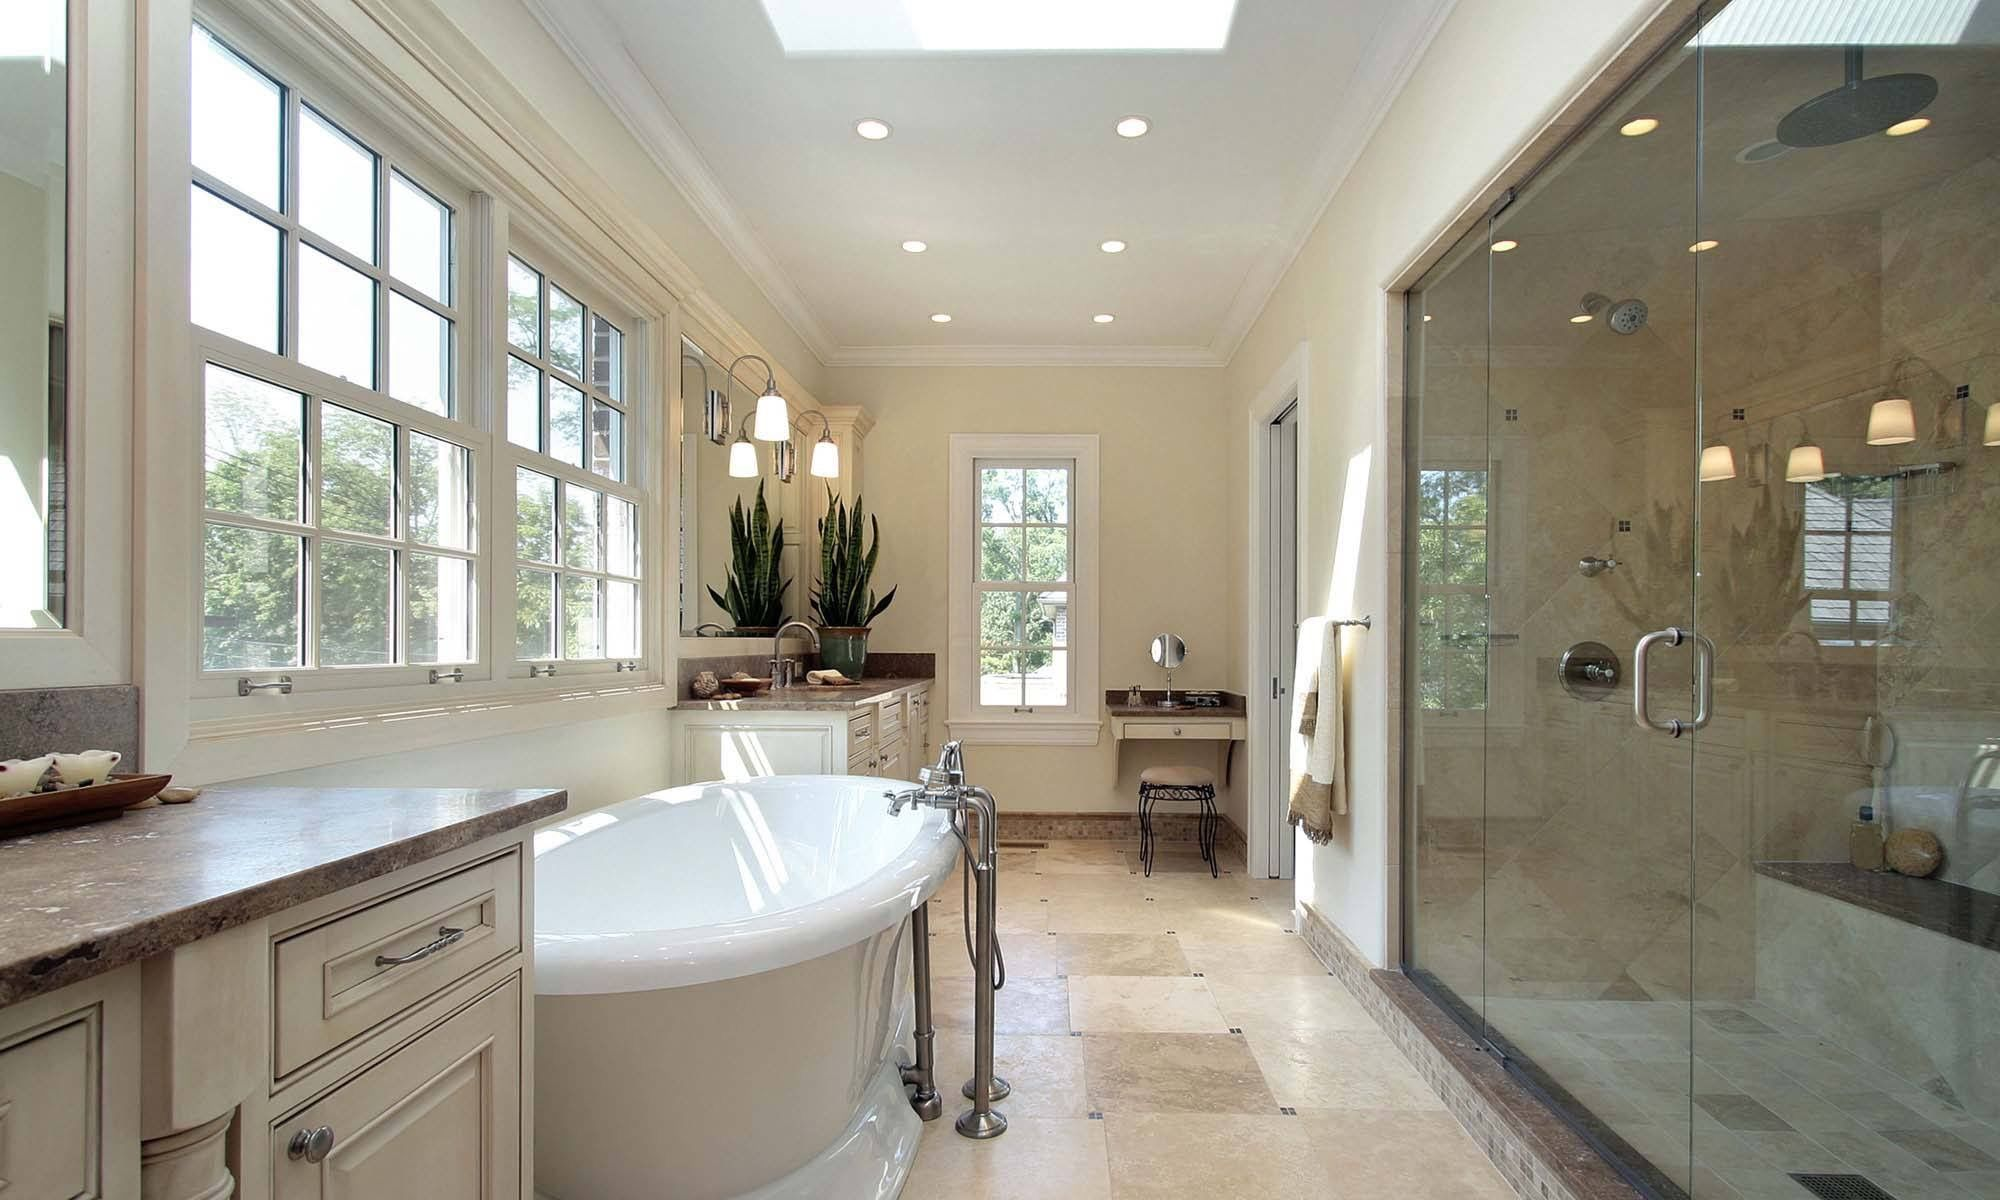 photos of remodeled bathrooms%0A View this Great Contemporary Master Bathroom with Skylight  u     Inset cabinets  by Home Stratosphere  Discover  u     browse thousands of other home design  ideas on